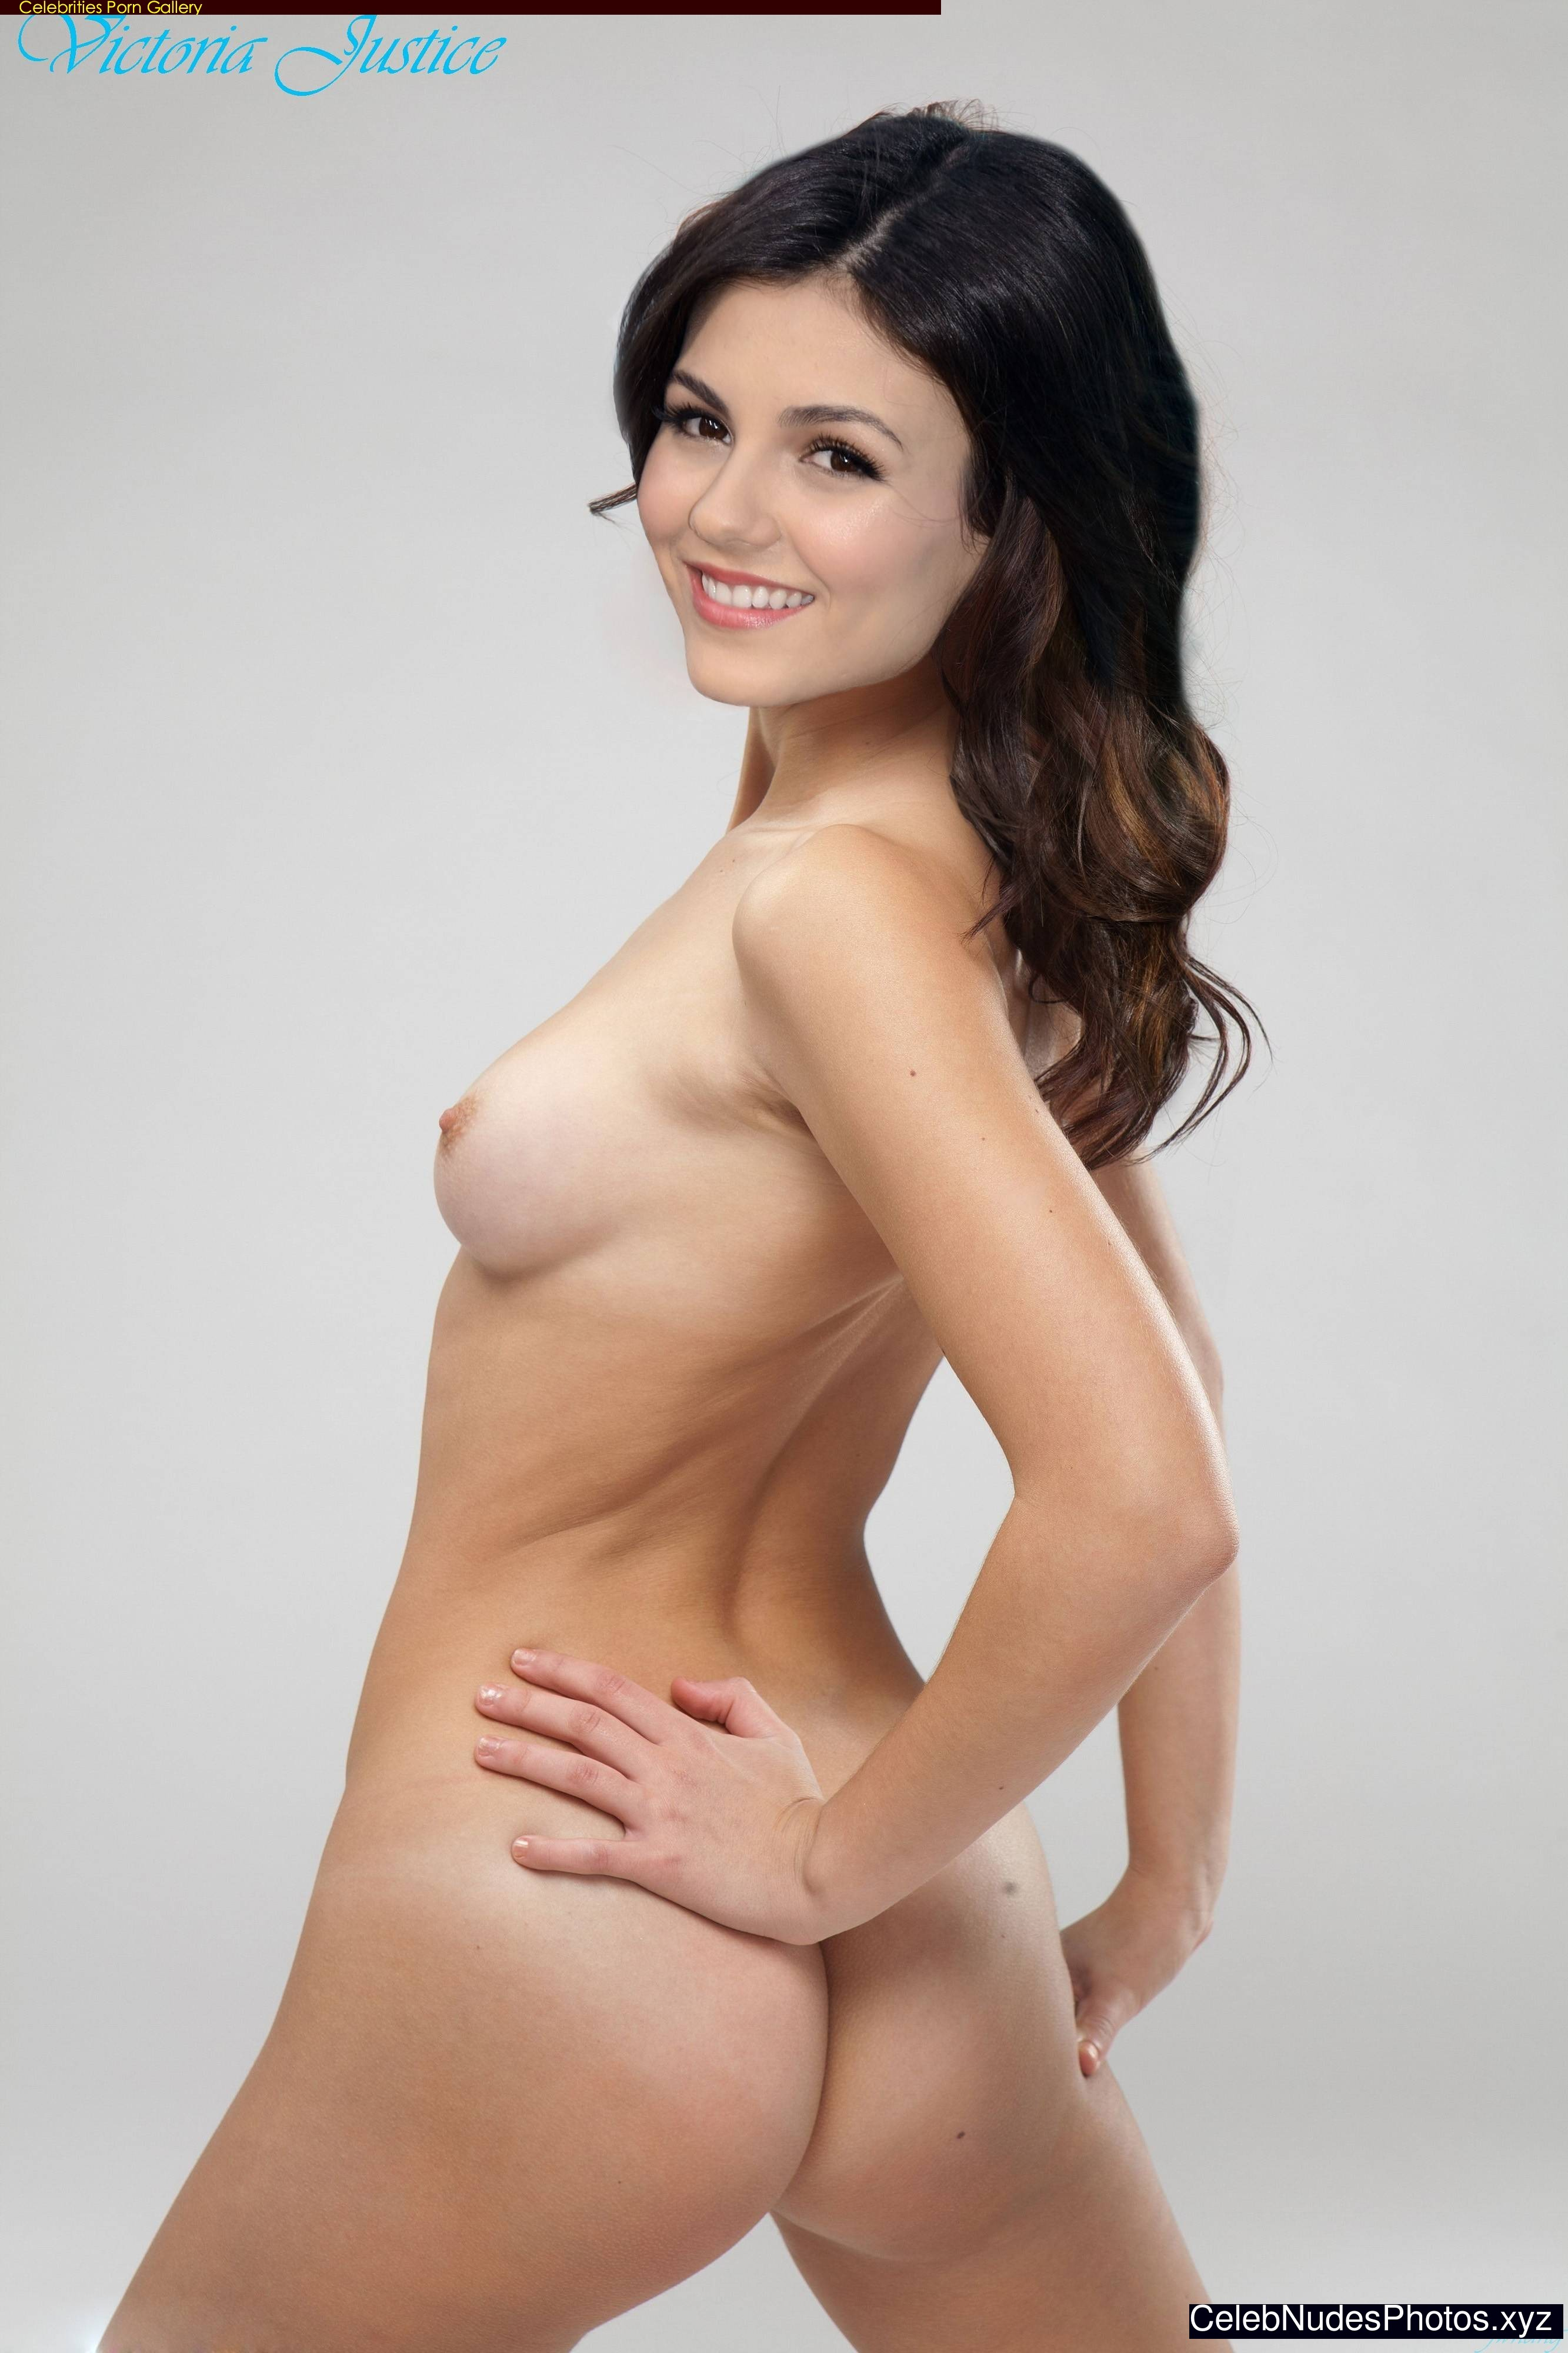 Nude pictures justice victoria